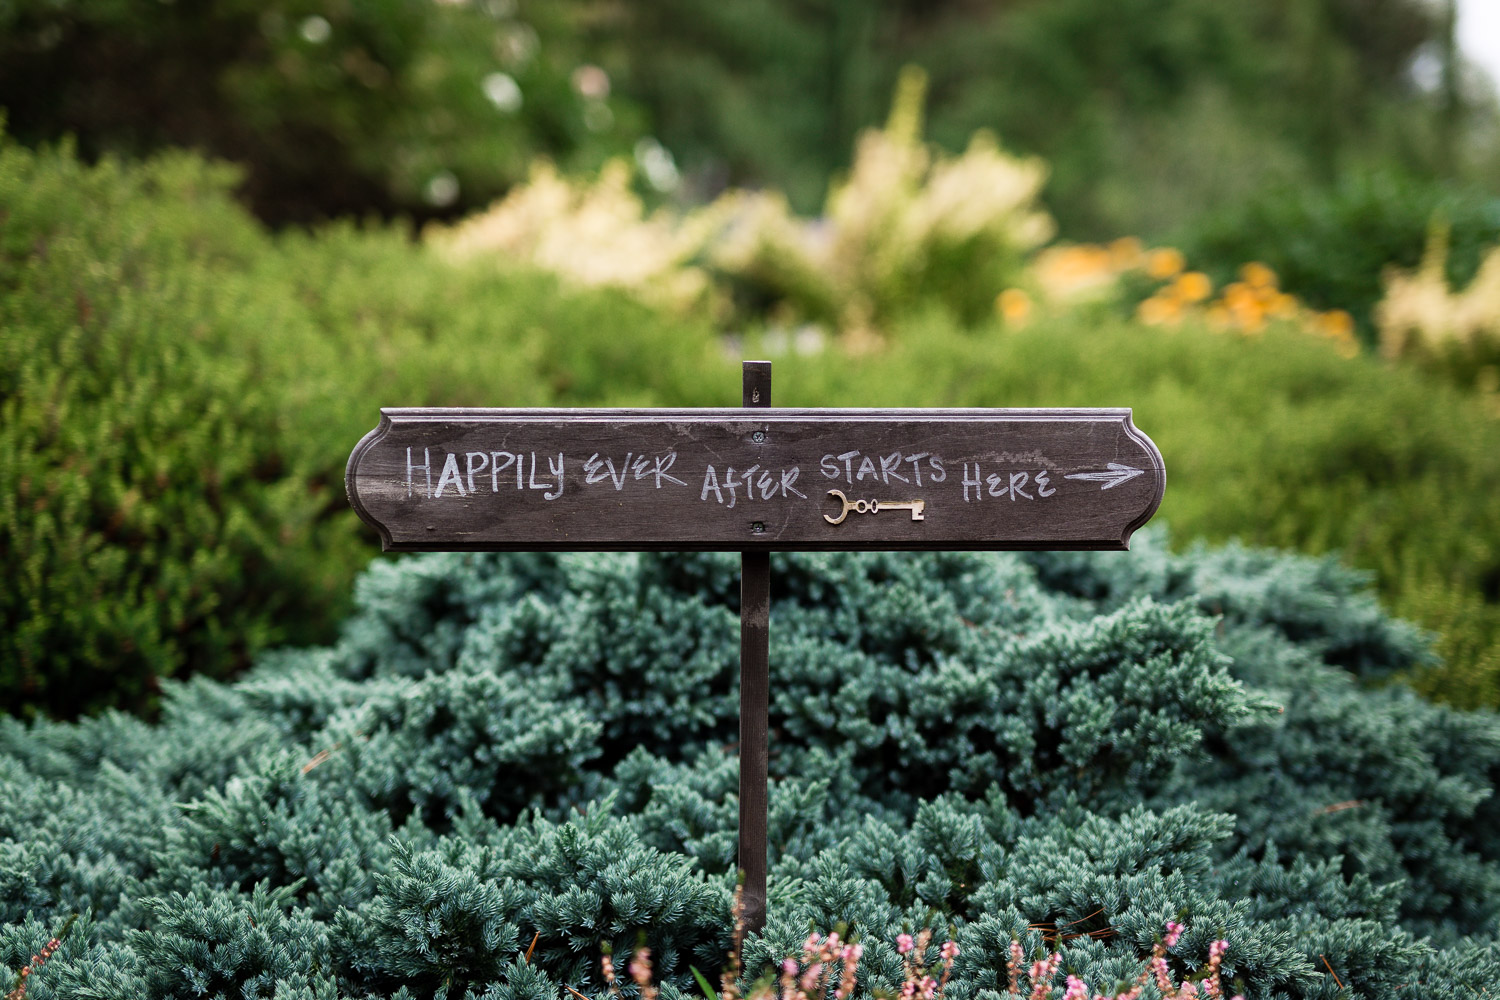 Happily Ever After Starts Here Sign - Twin Willow Gardens Snohomish